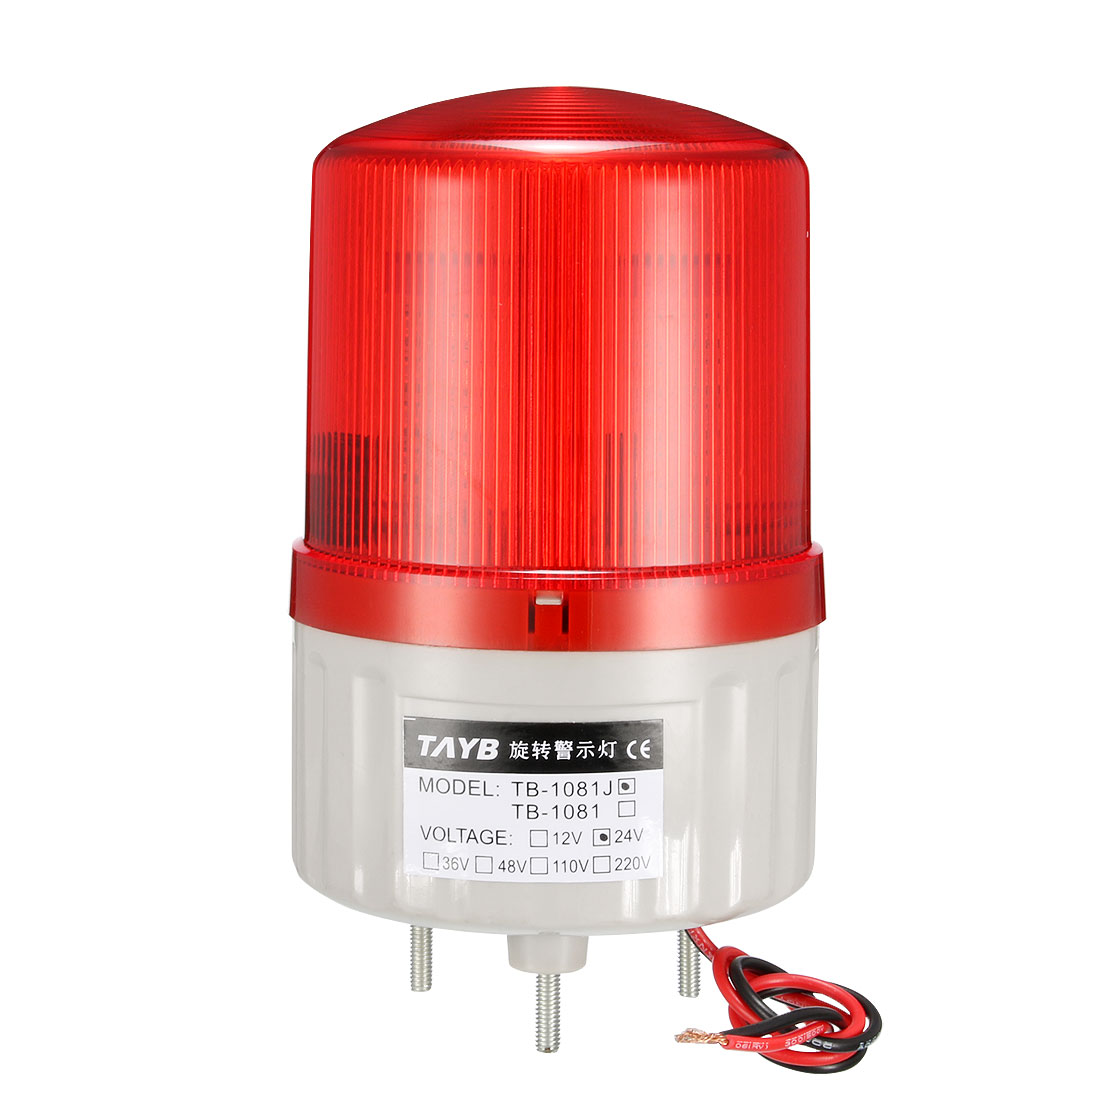 LED Warning Light Bulb Bright Alarm Lamp Buzzer 90dB DC24V Red TB-1081J